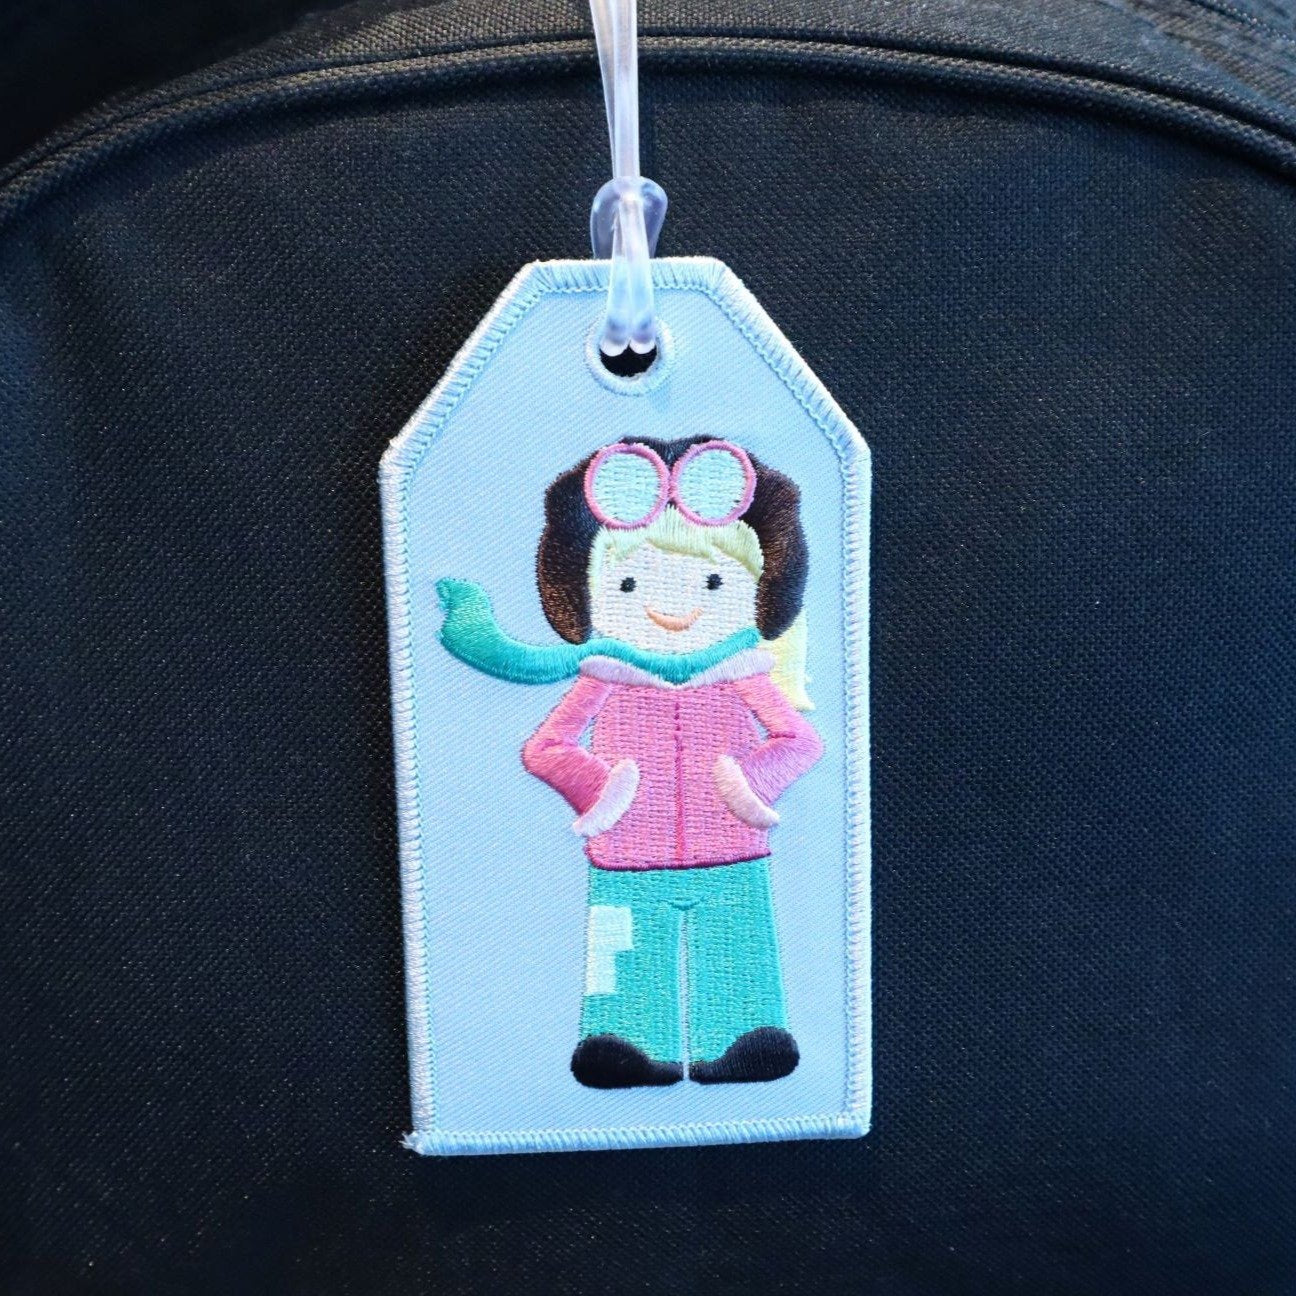 Aviator Girl - Bag Tag